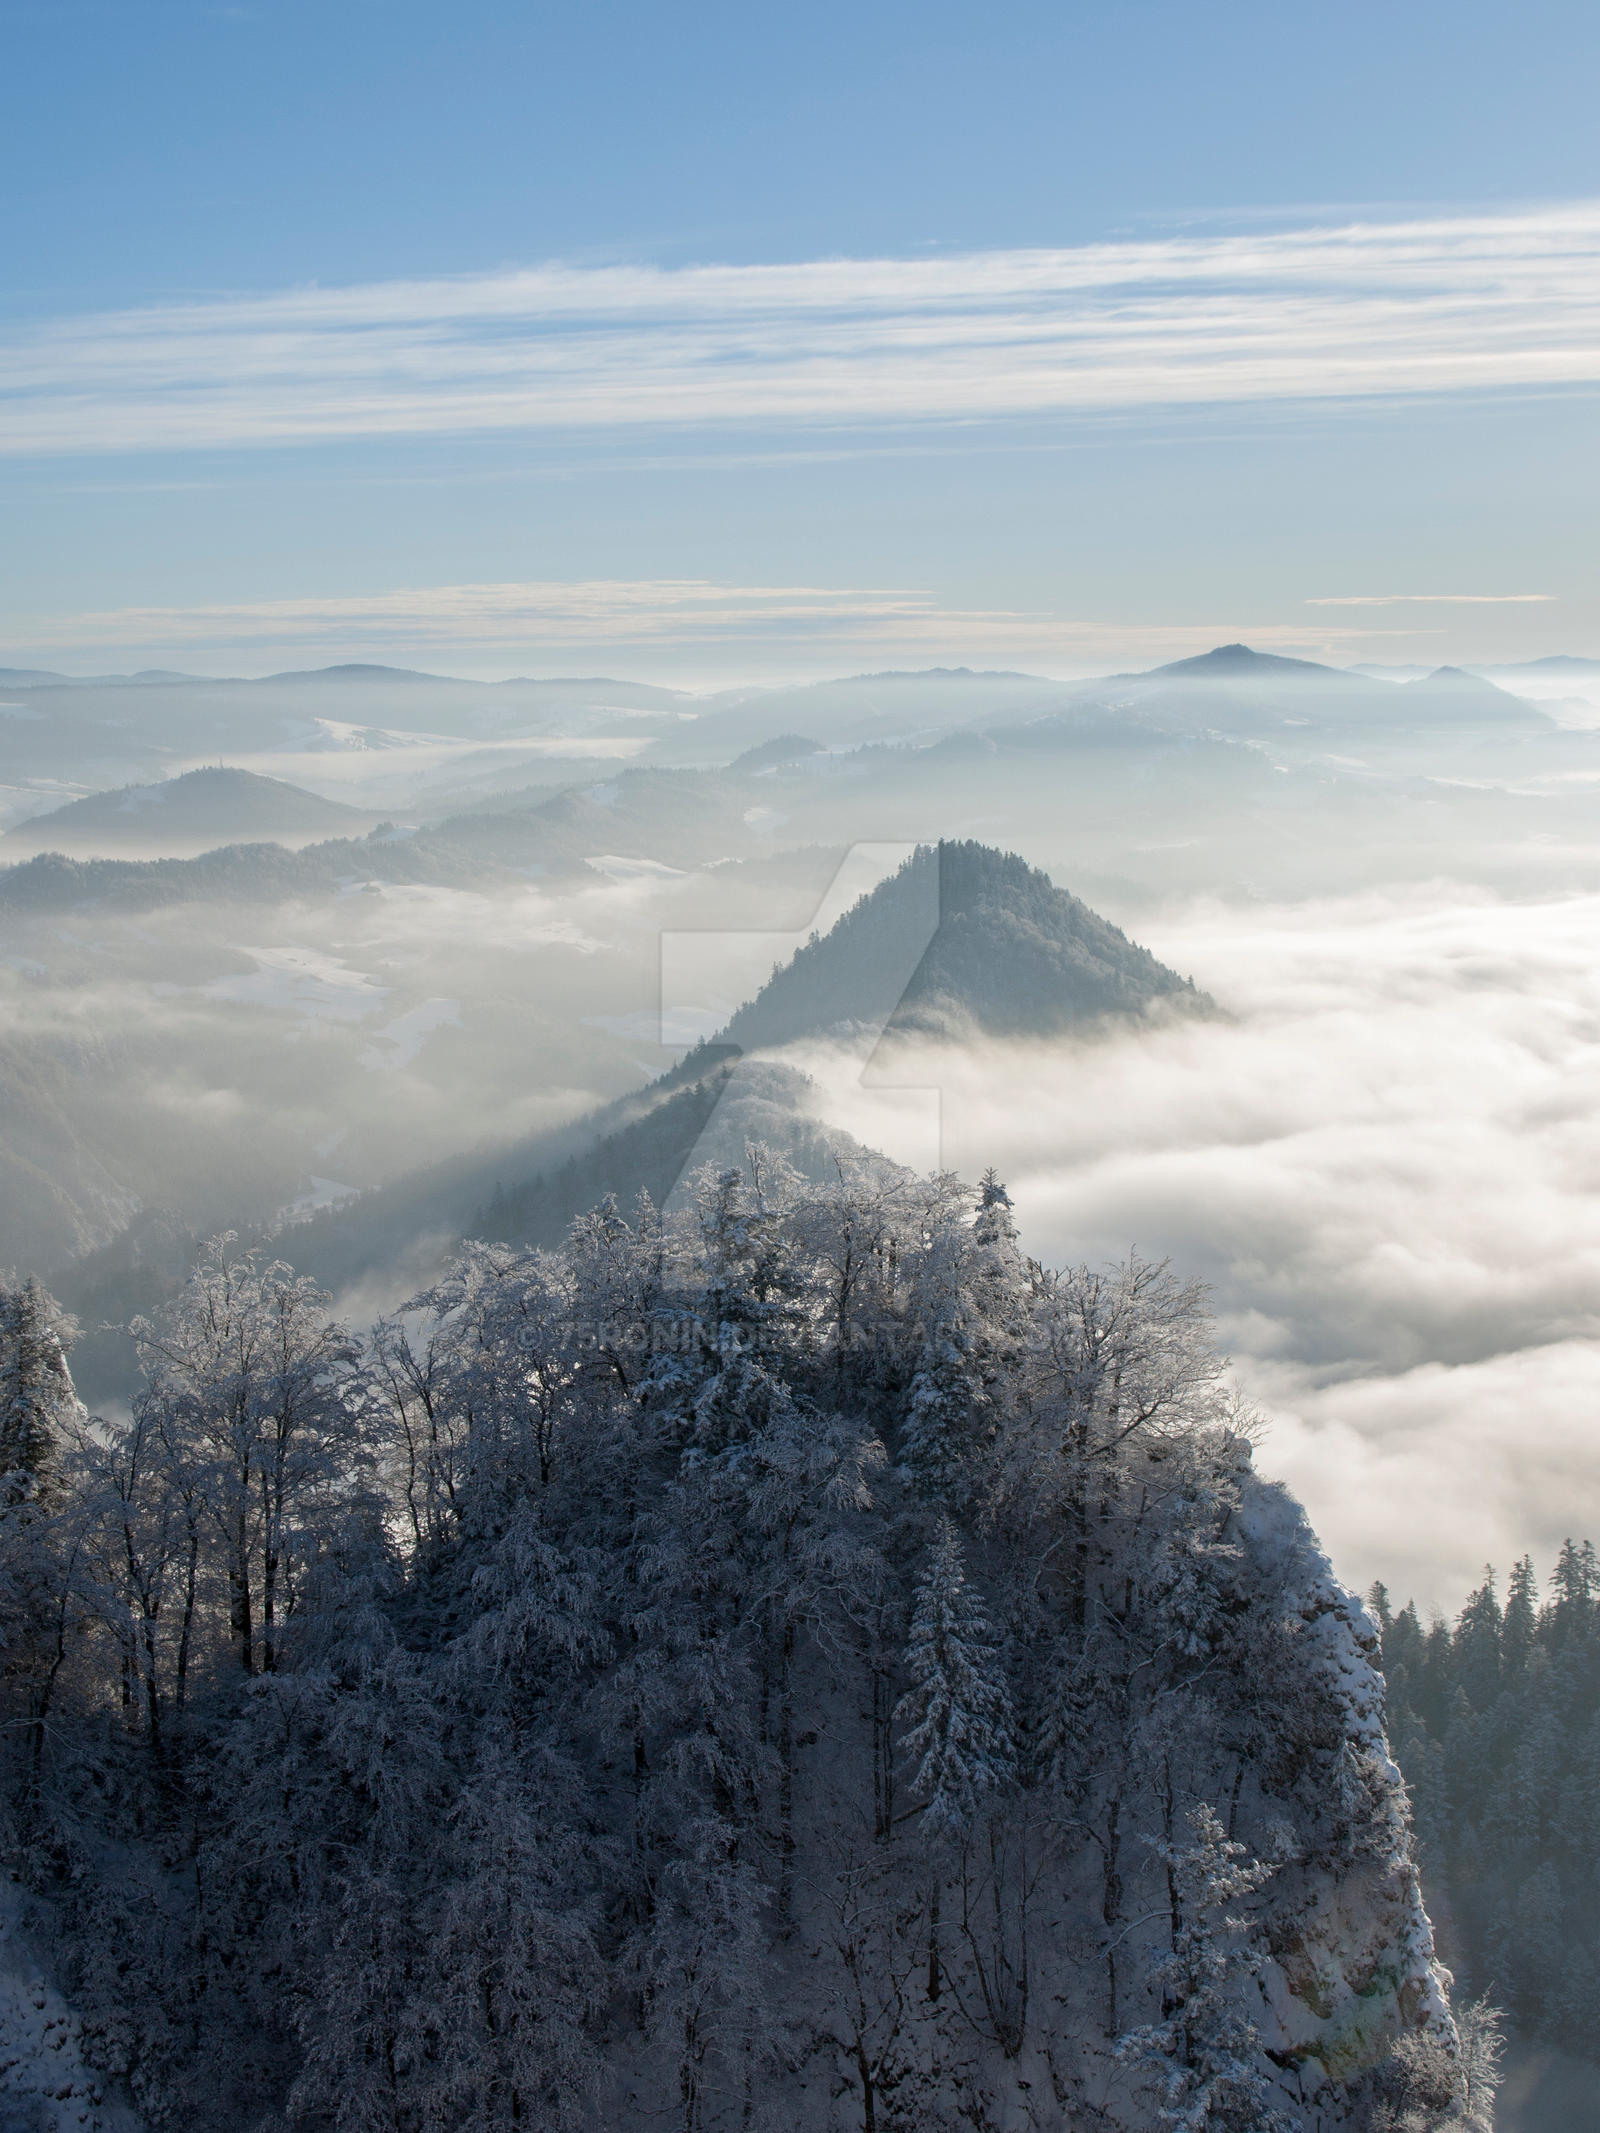 Foggy mountains by 75ronin